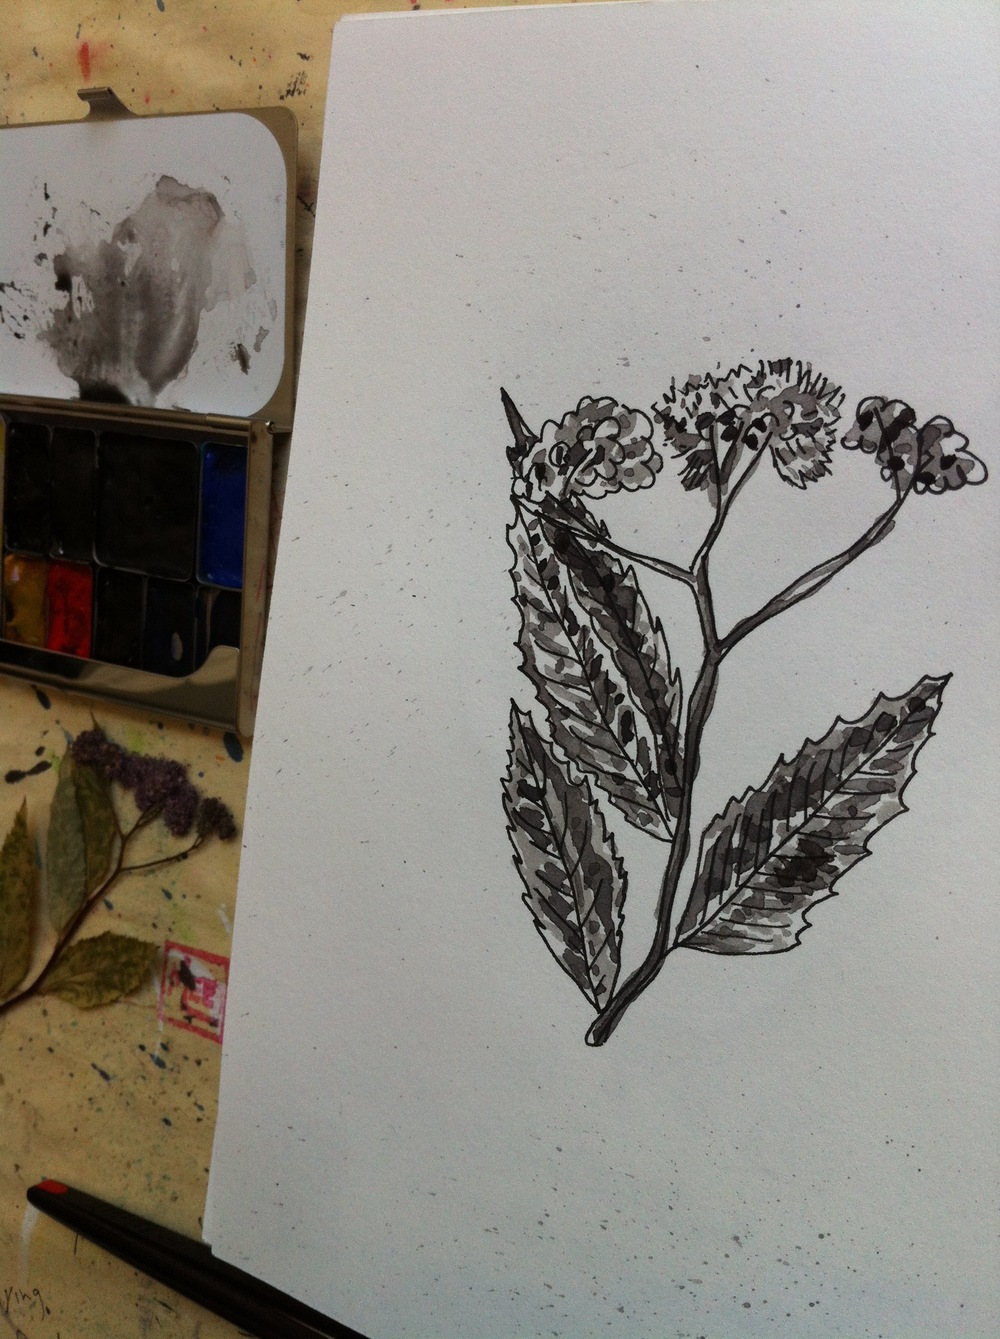 started out with painting a dried and pressed flower from the safety of my studio